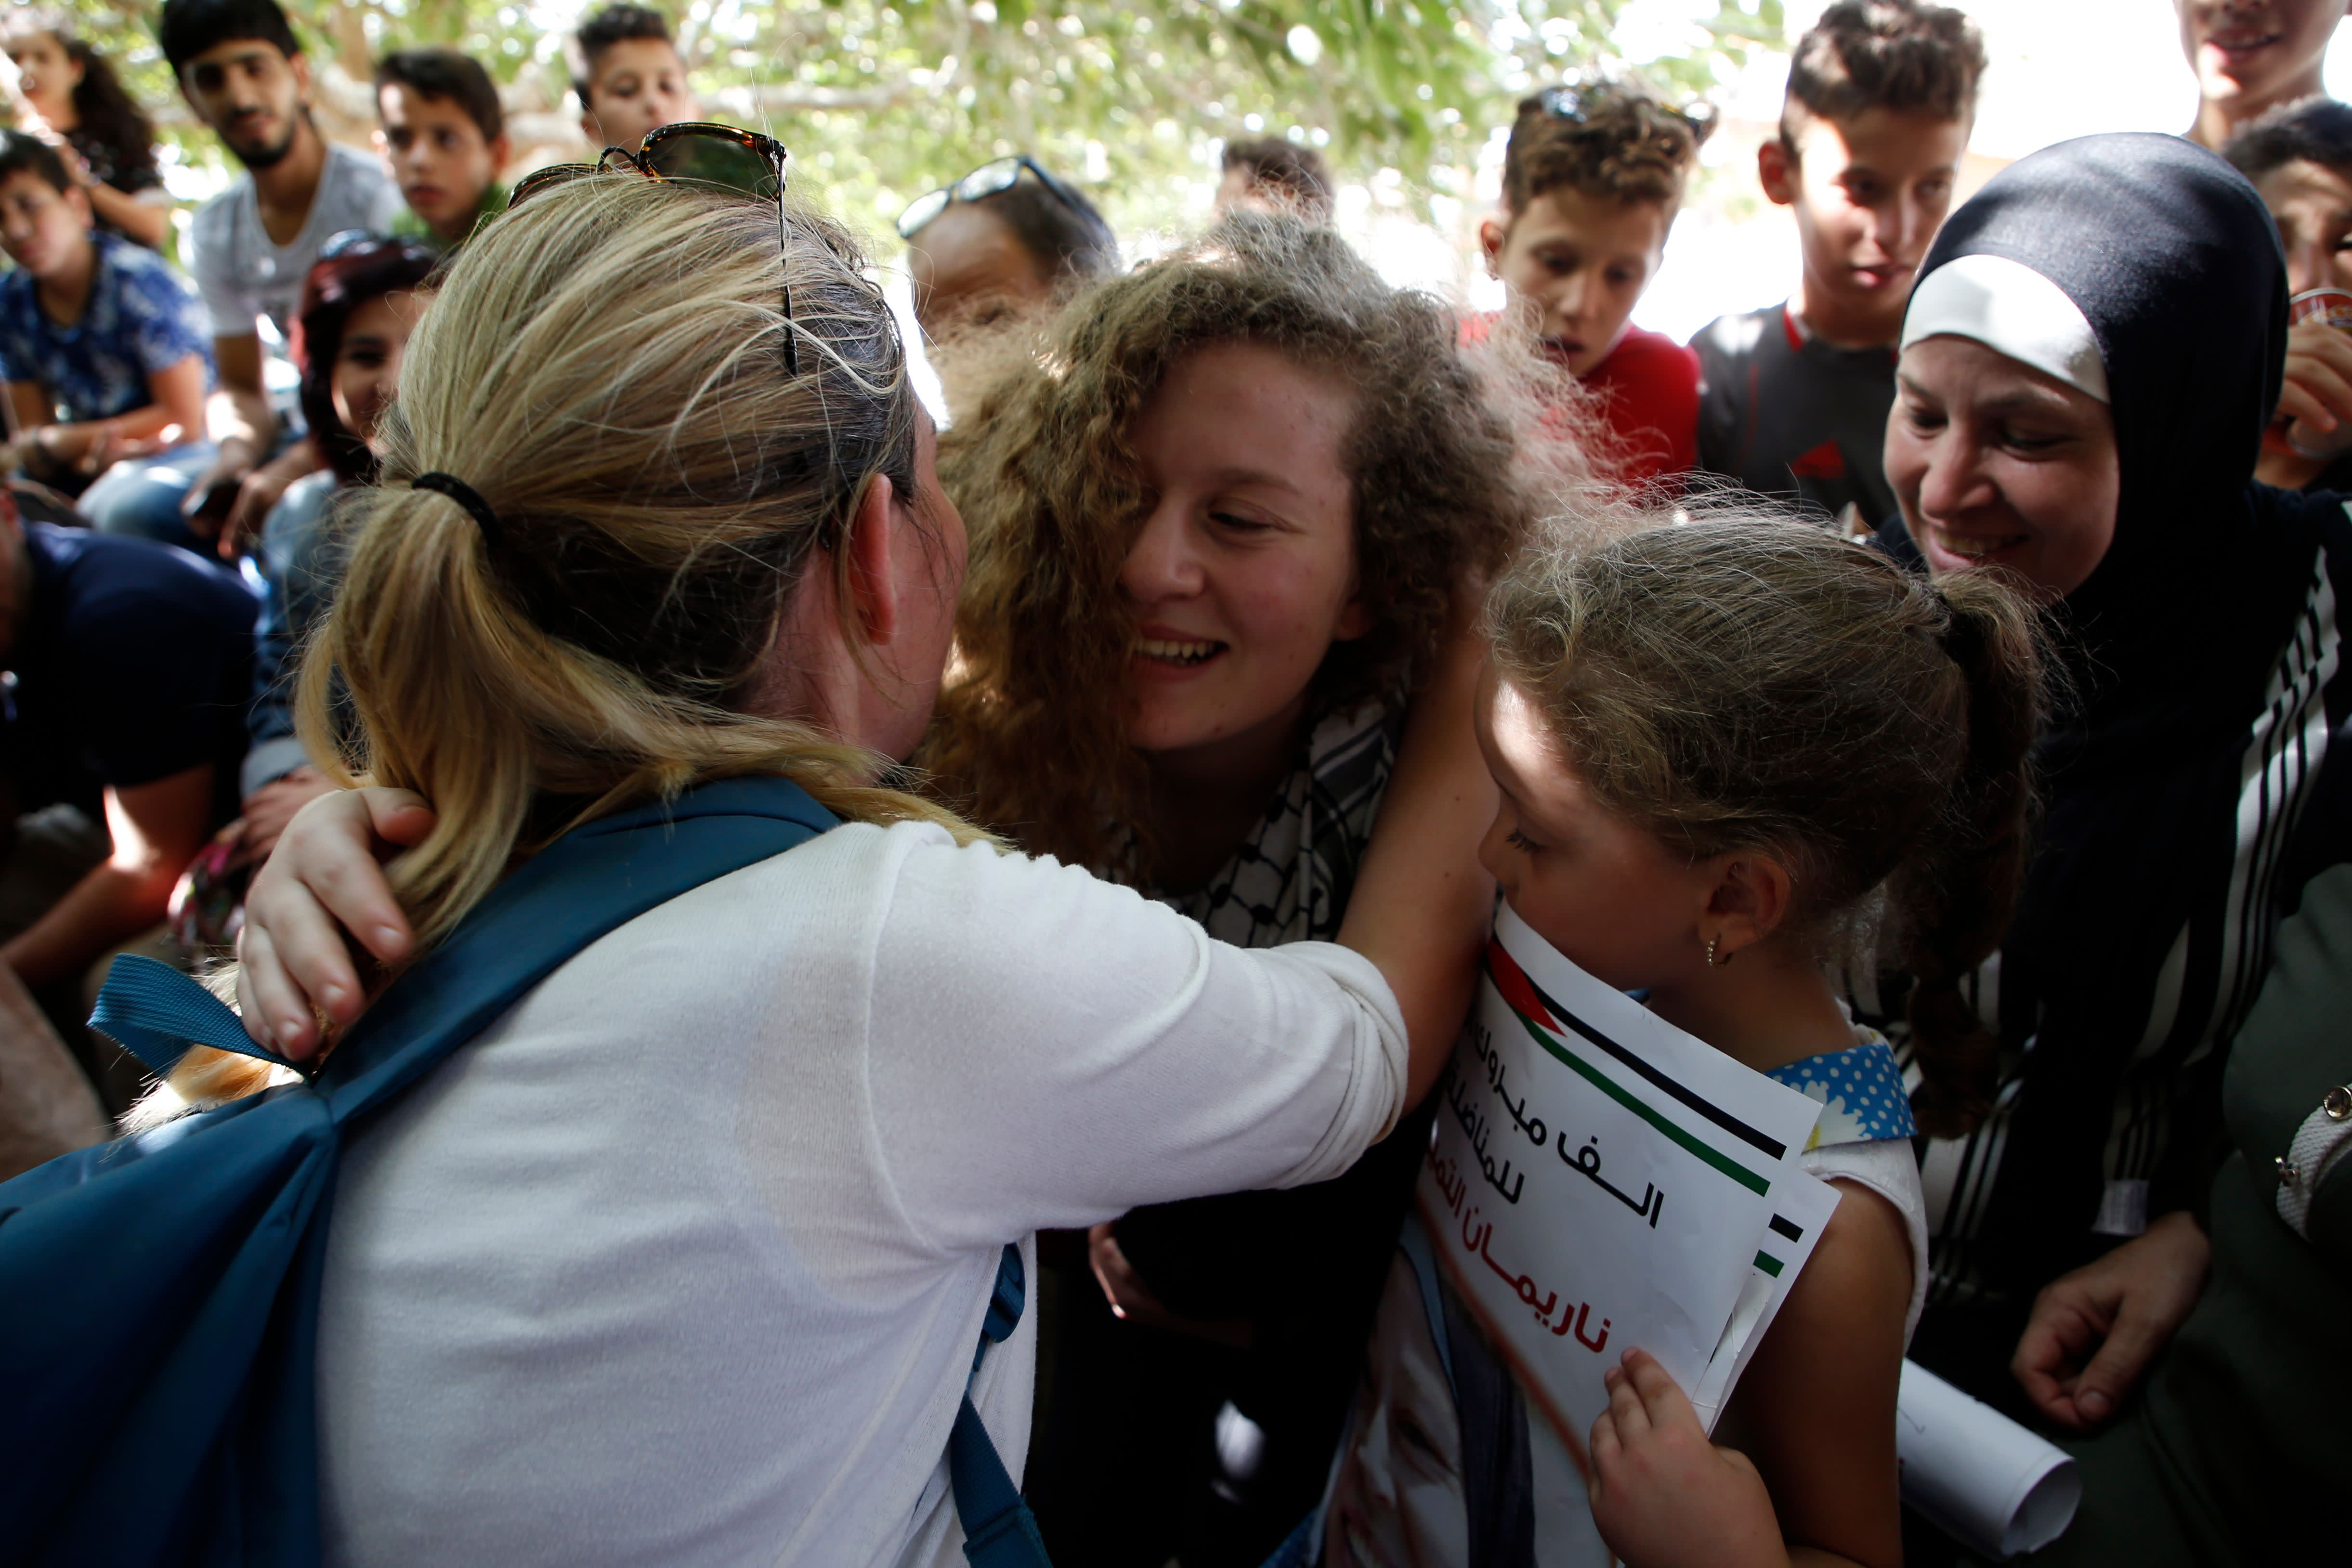 Palestinian Protester Ahed Tamimi Was Released From an